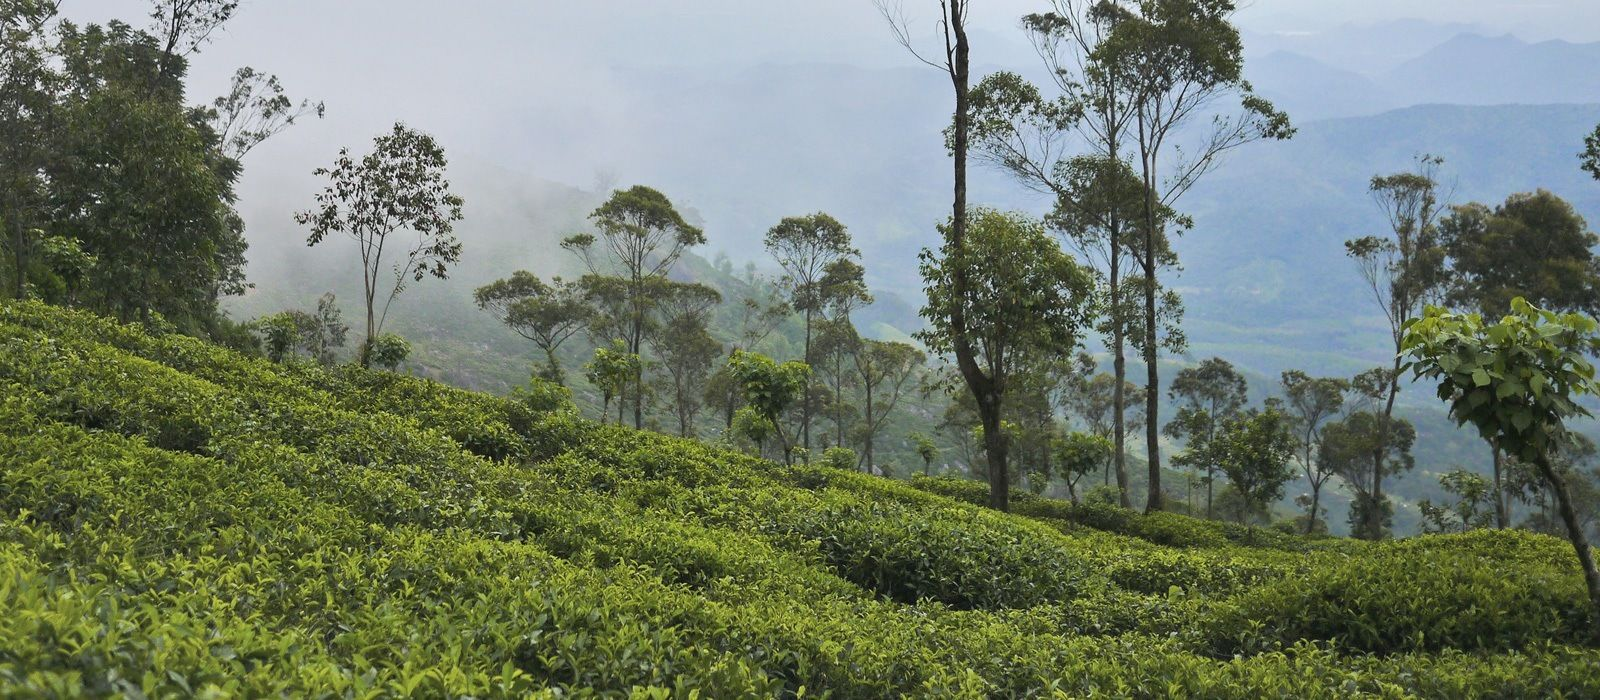 Simply Sri Lanka: Temples and Tea Tour Trip 2